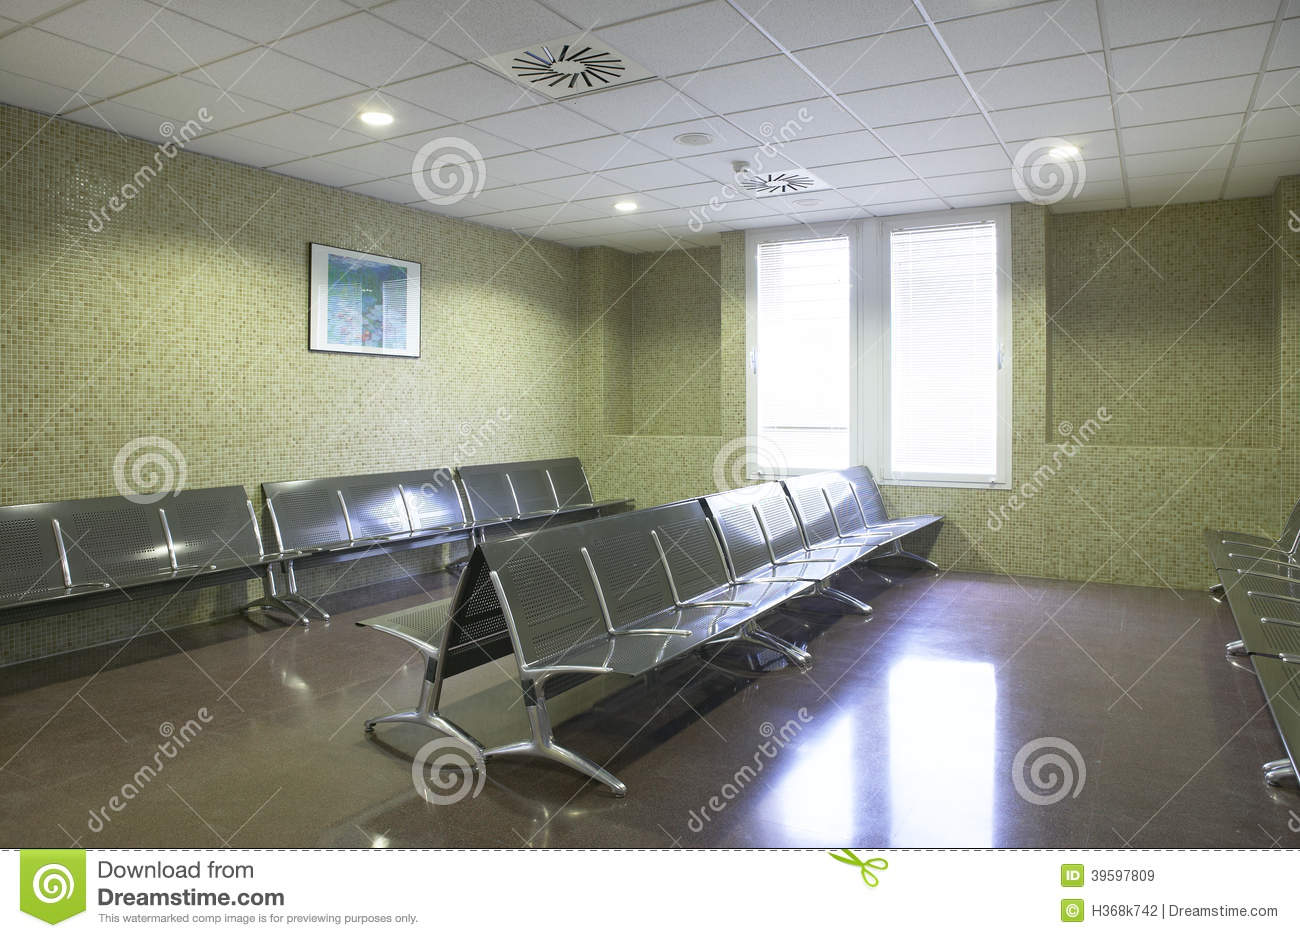 Hospital Waiting Area With Metallic Chairs Stock Photo